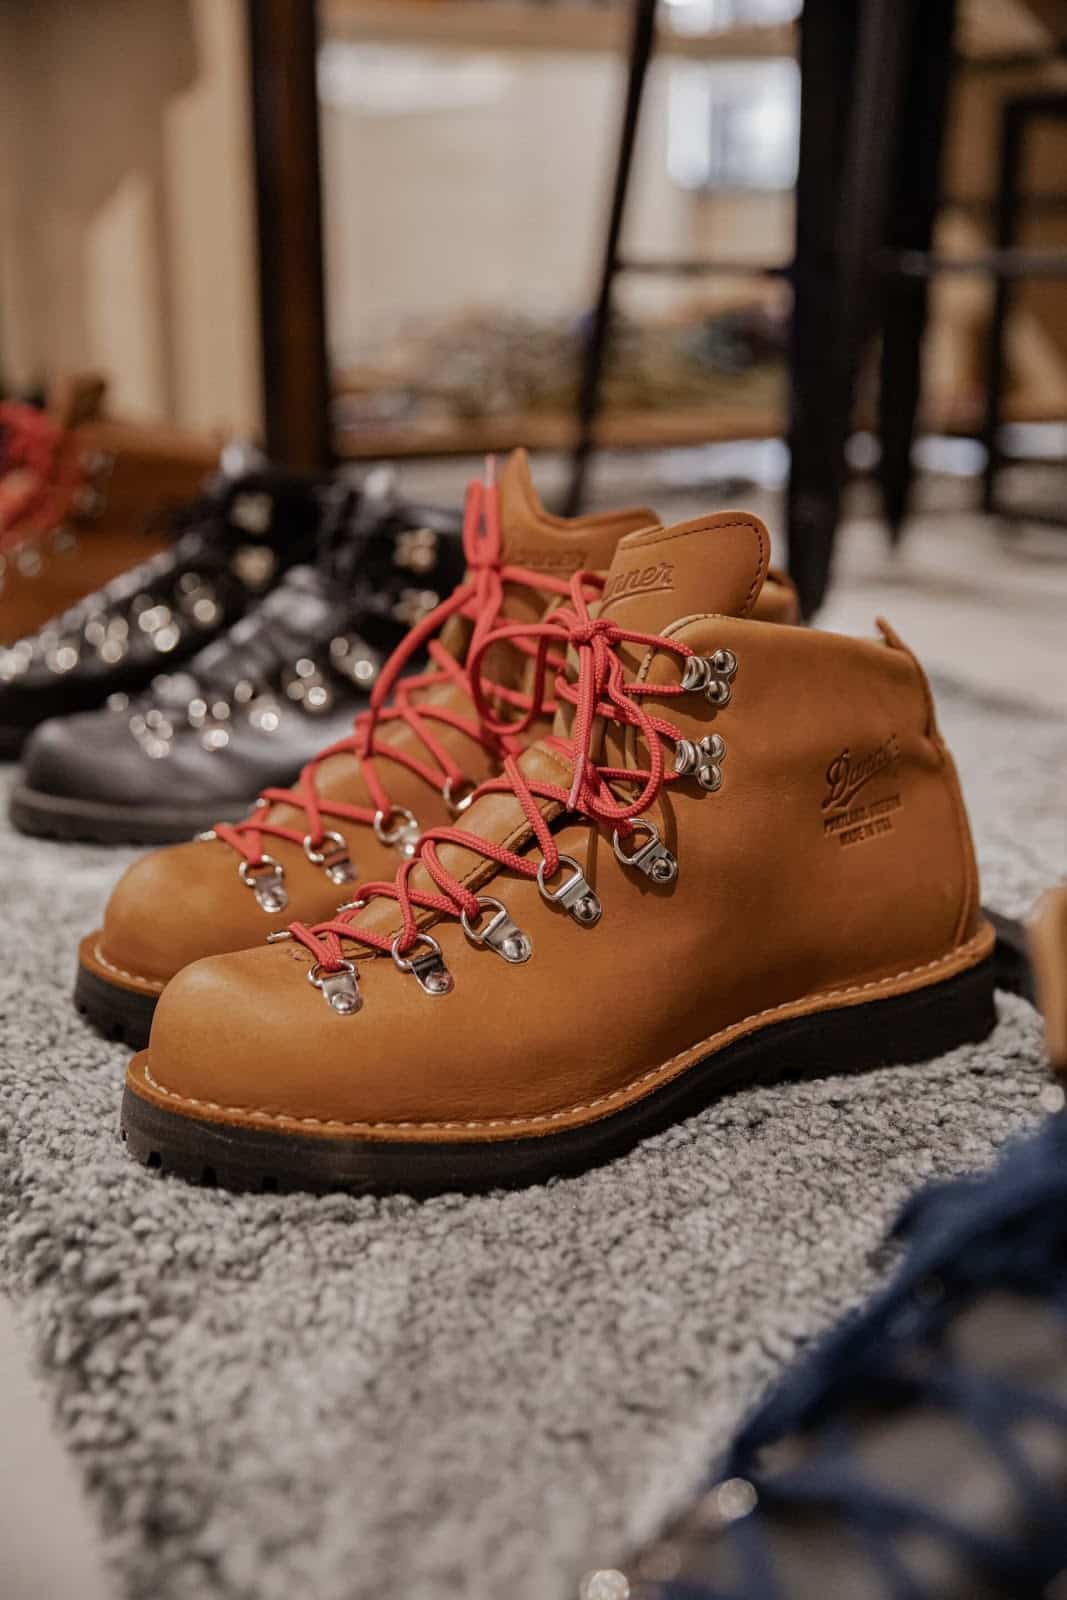 Well made boots